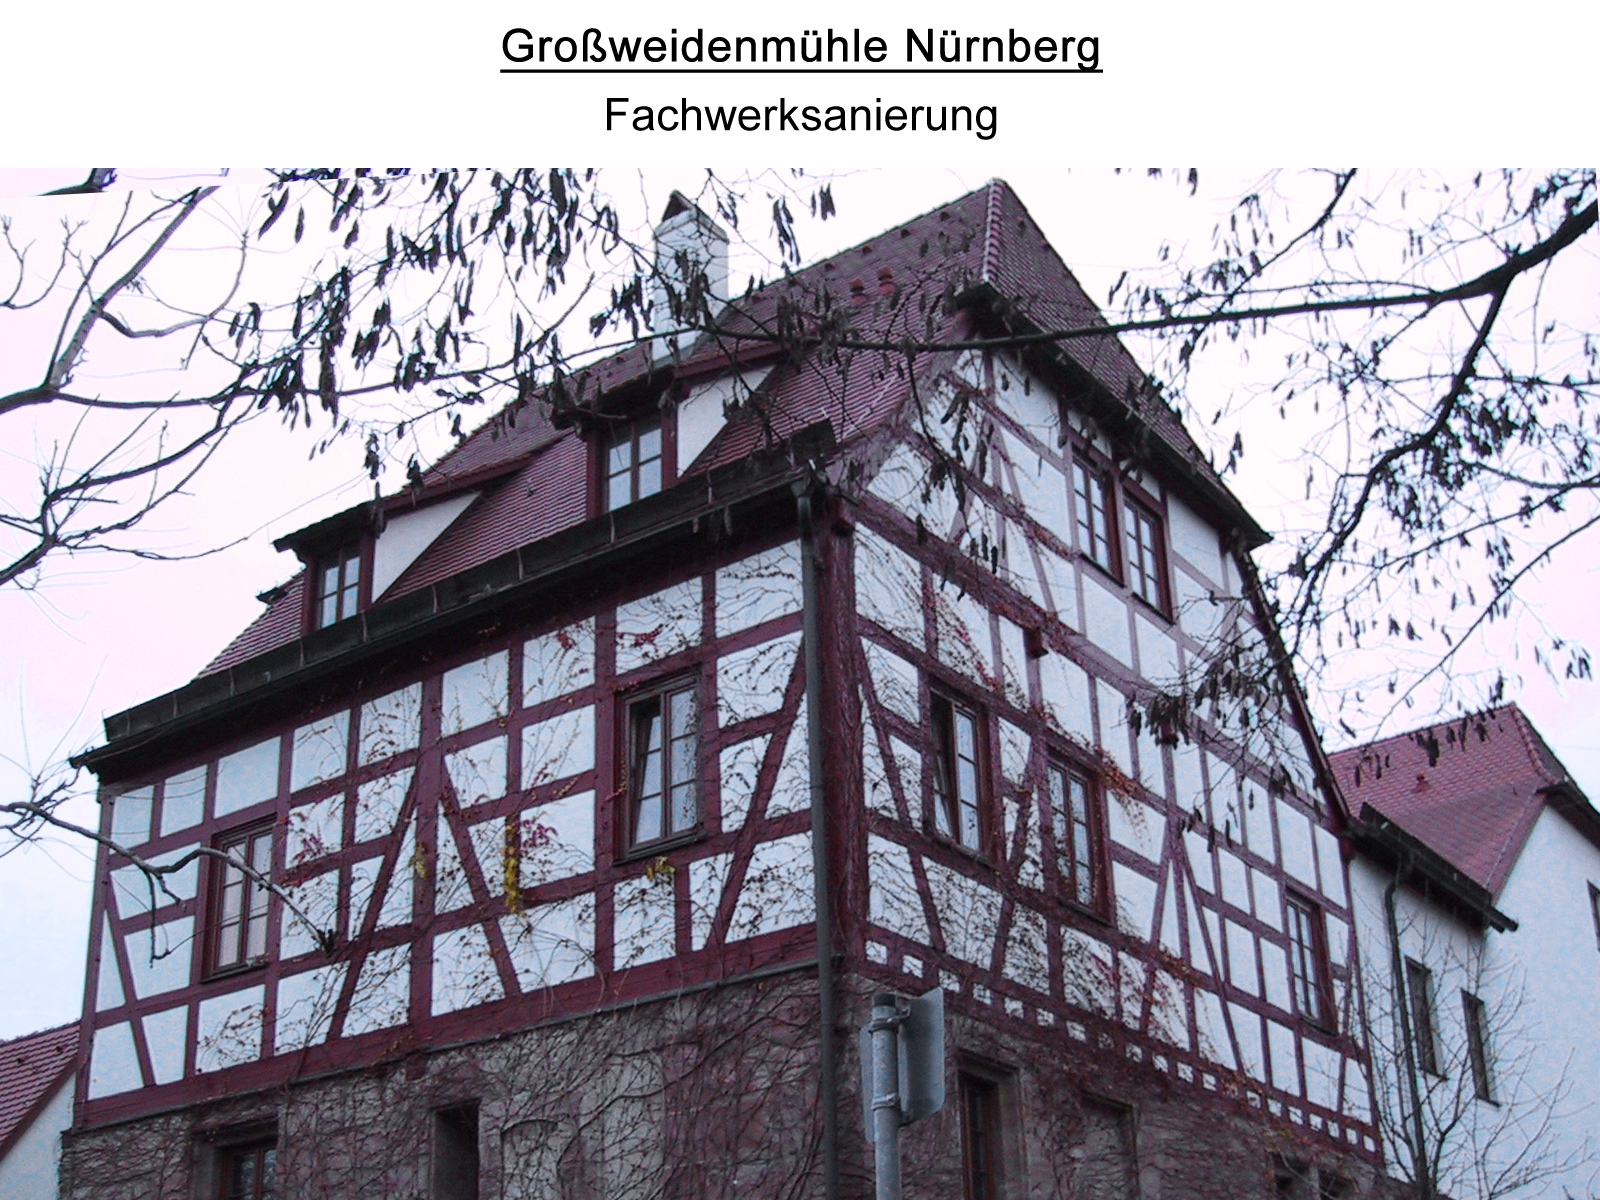 grossweidenmuehle